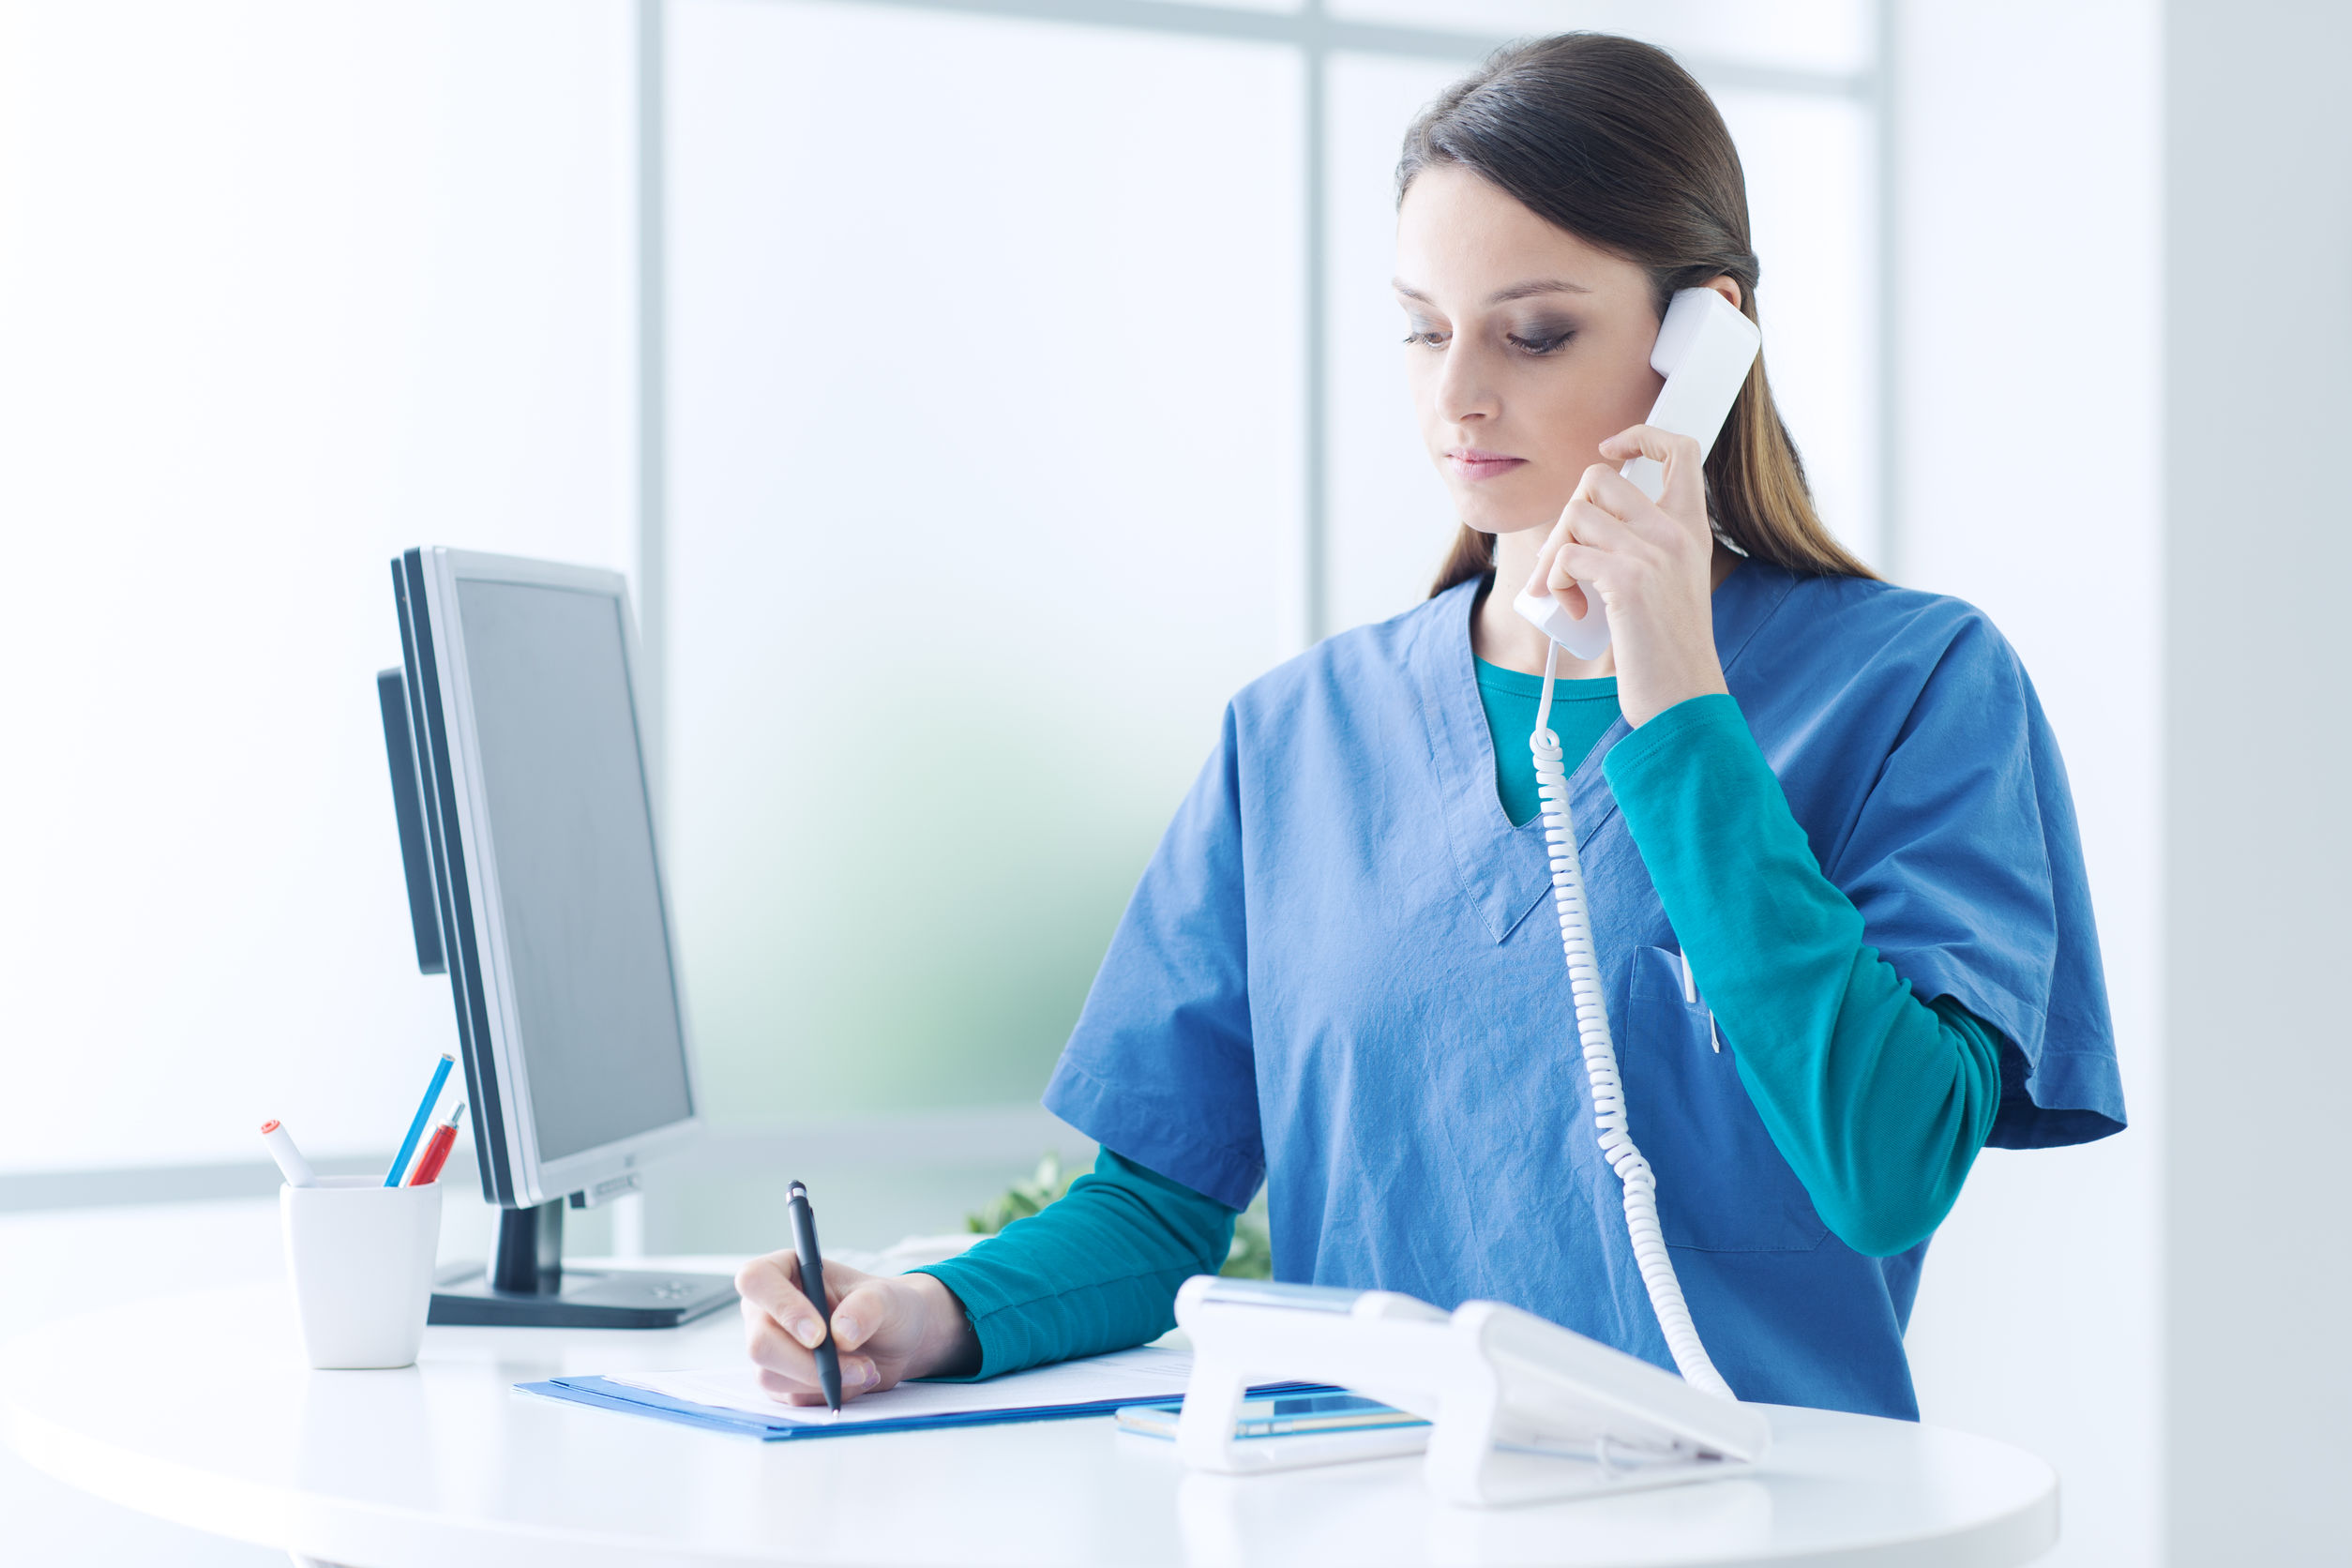 Young female doctor and practitioner working at the reception desk, she is answering phone calls and scheduling appointments